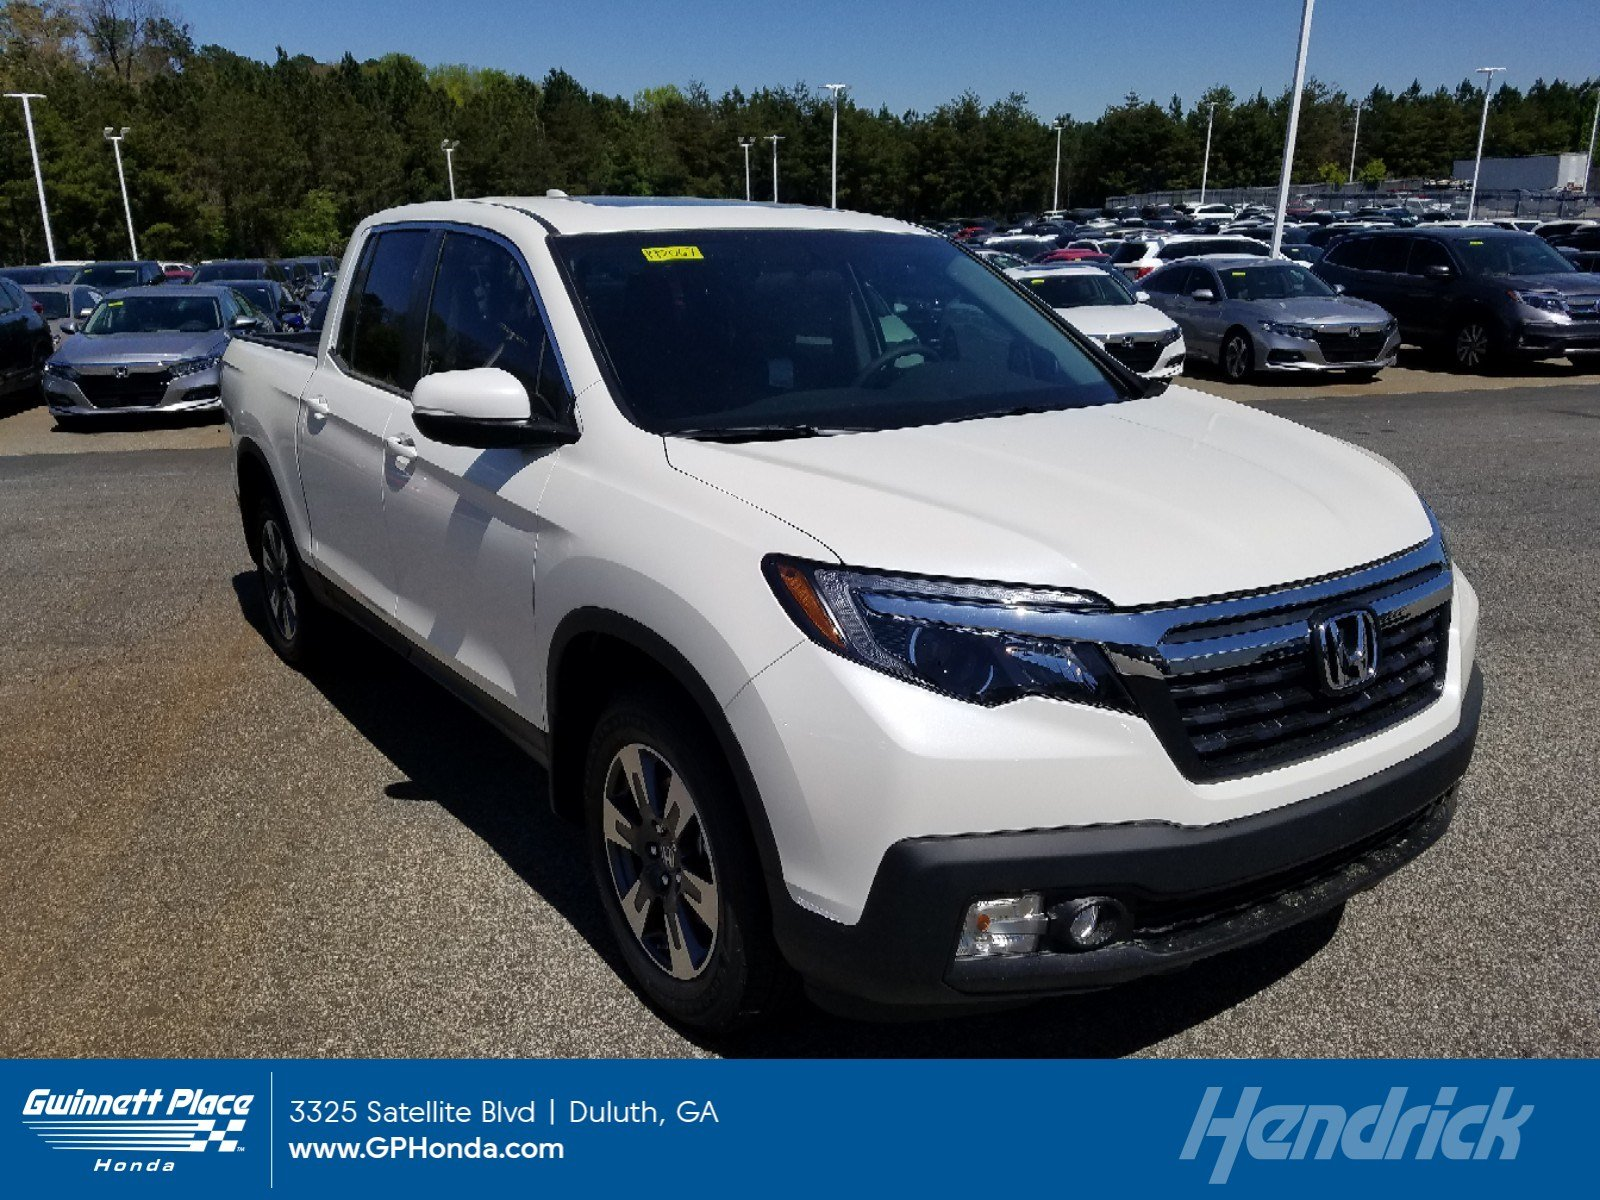 New 2019 Honda Ridgeline RTL AWD Pickup for sale in Duluth, GA